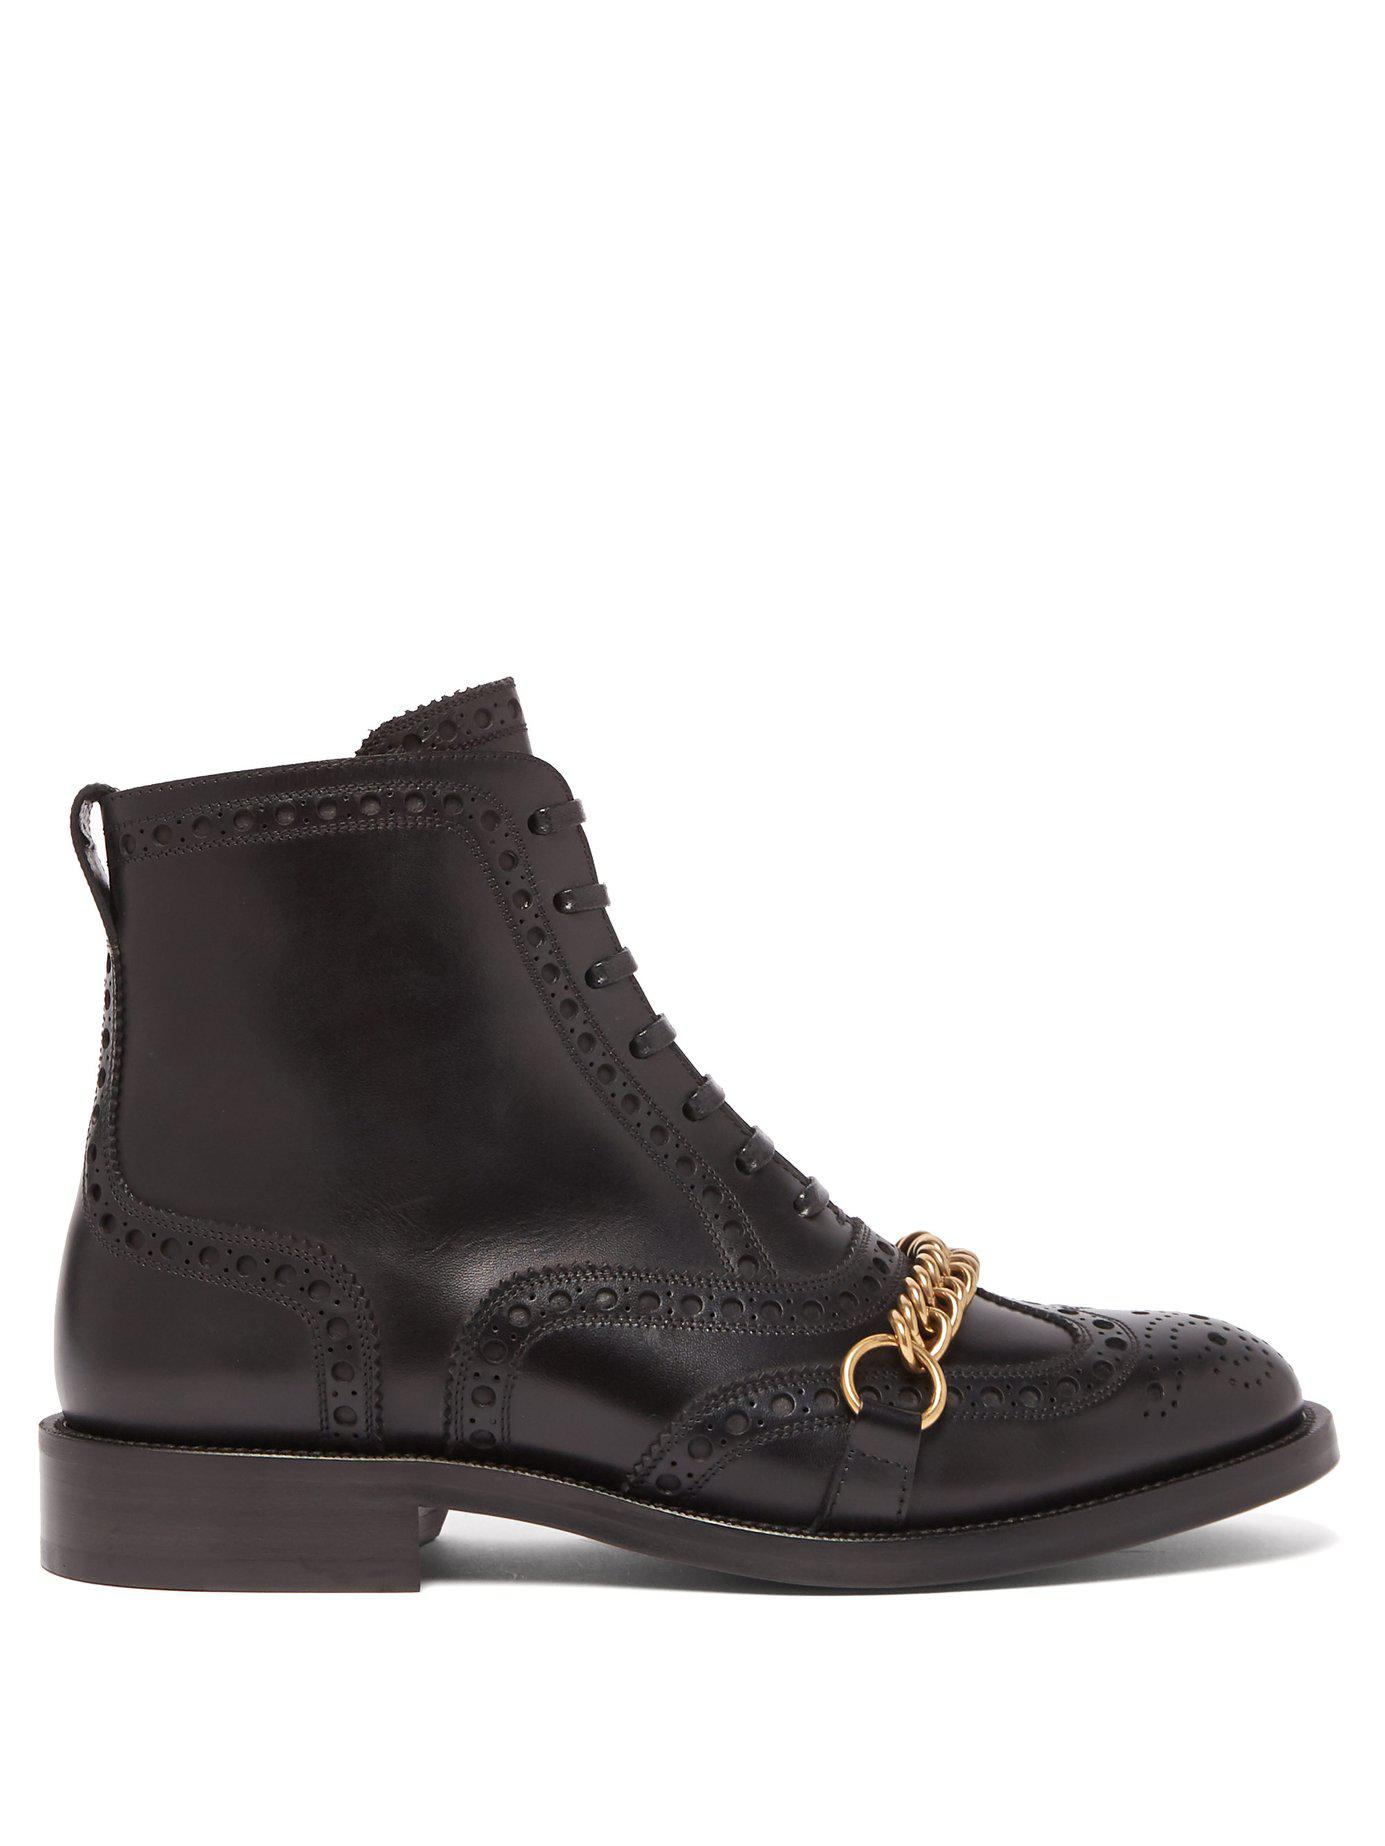 027b2582778 Lyst - Burberry Barksby Brogue Leather Ankle Boots in Black